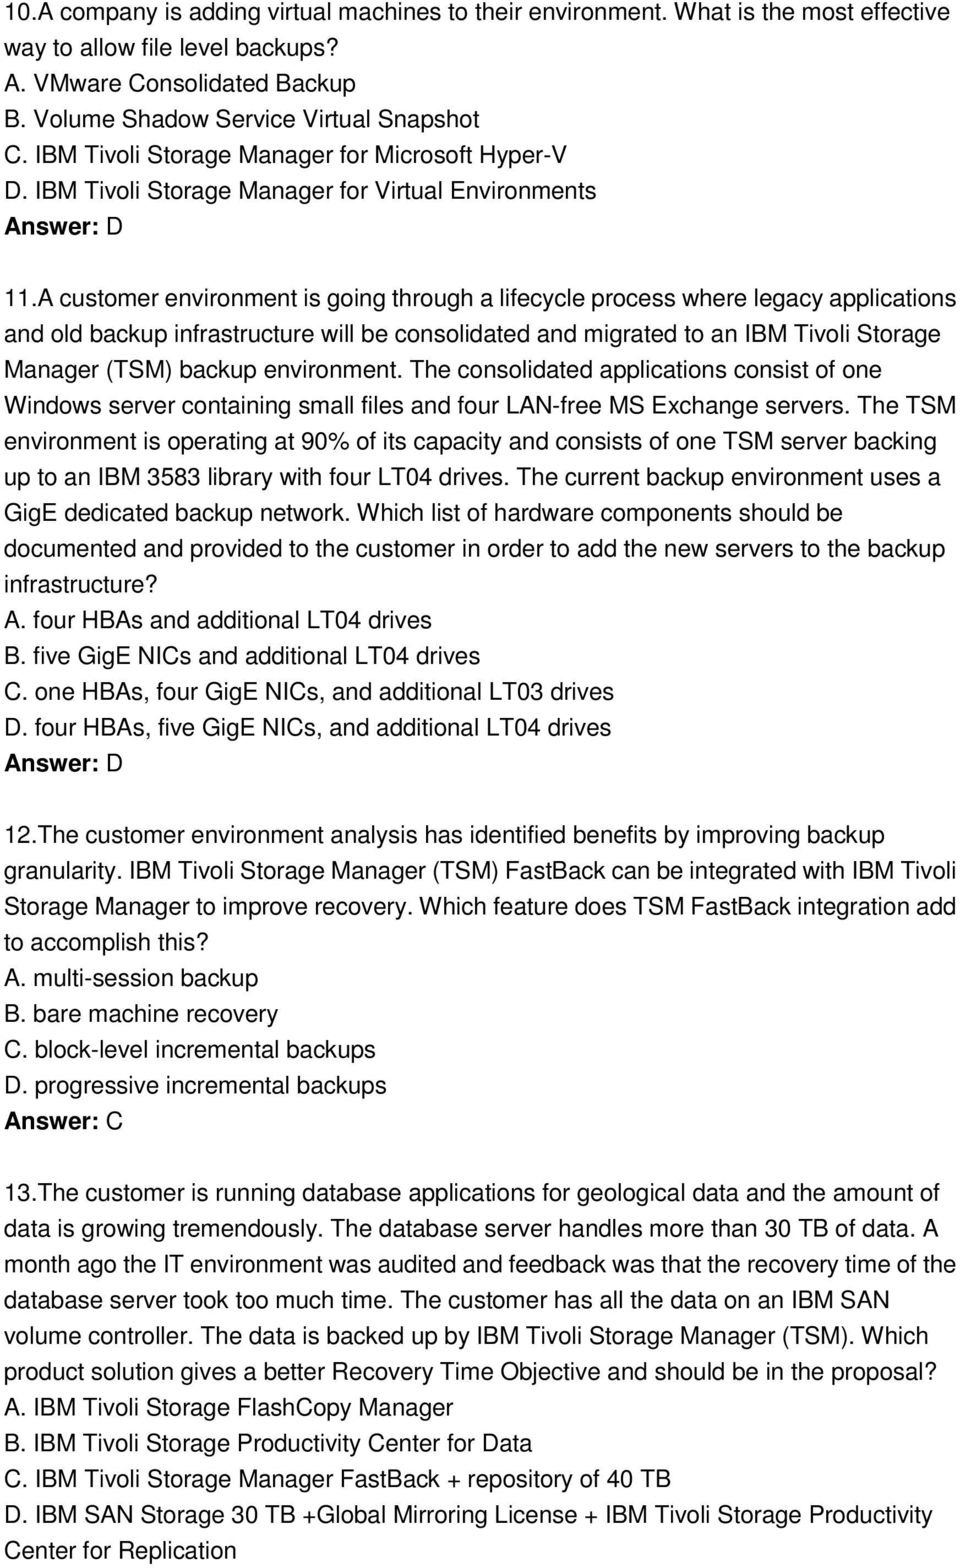 A customer environment is going through a lifecycle process where legacy applications and old backup infrastructure will be consolidated and migrated to an IBM Tivoli Storage Manager (TSM) backup